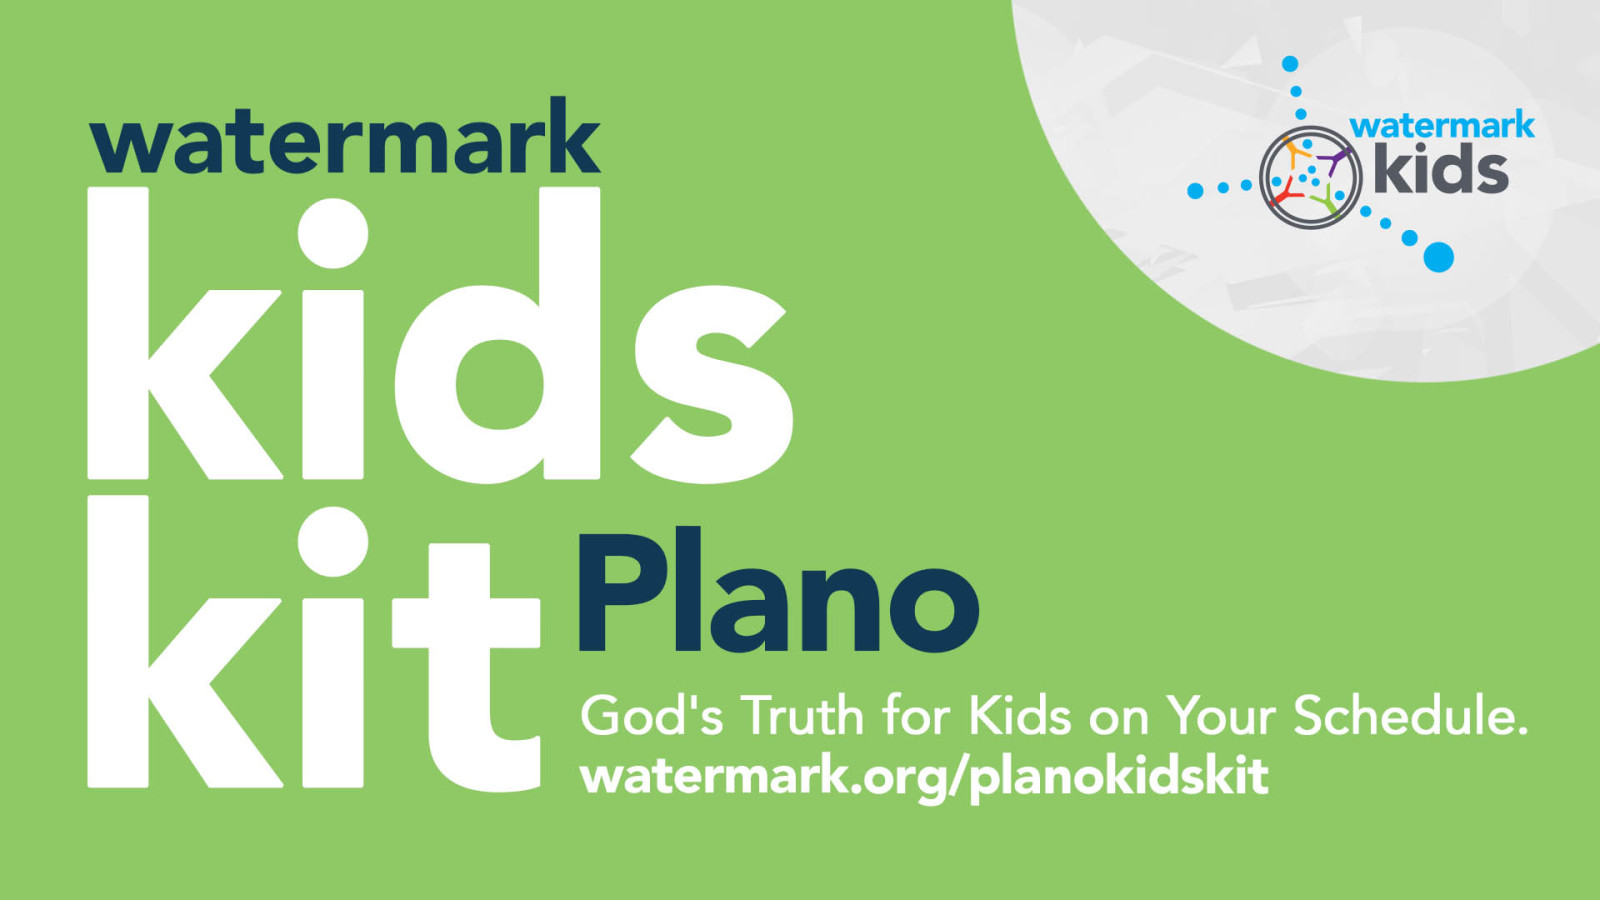 Watermark Plano Kids Kit For May 3 Hero Image